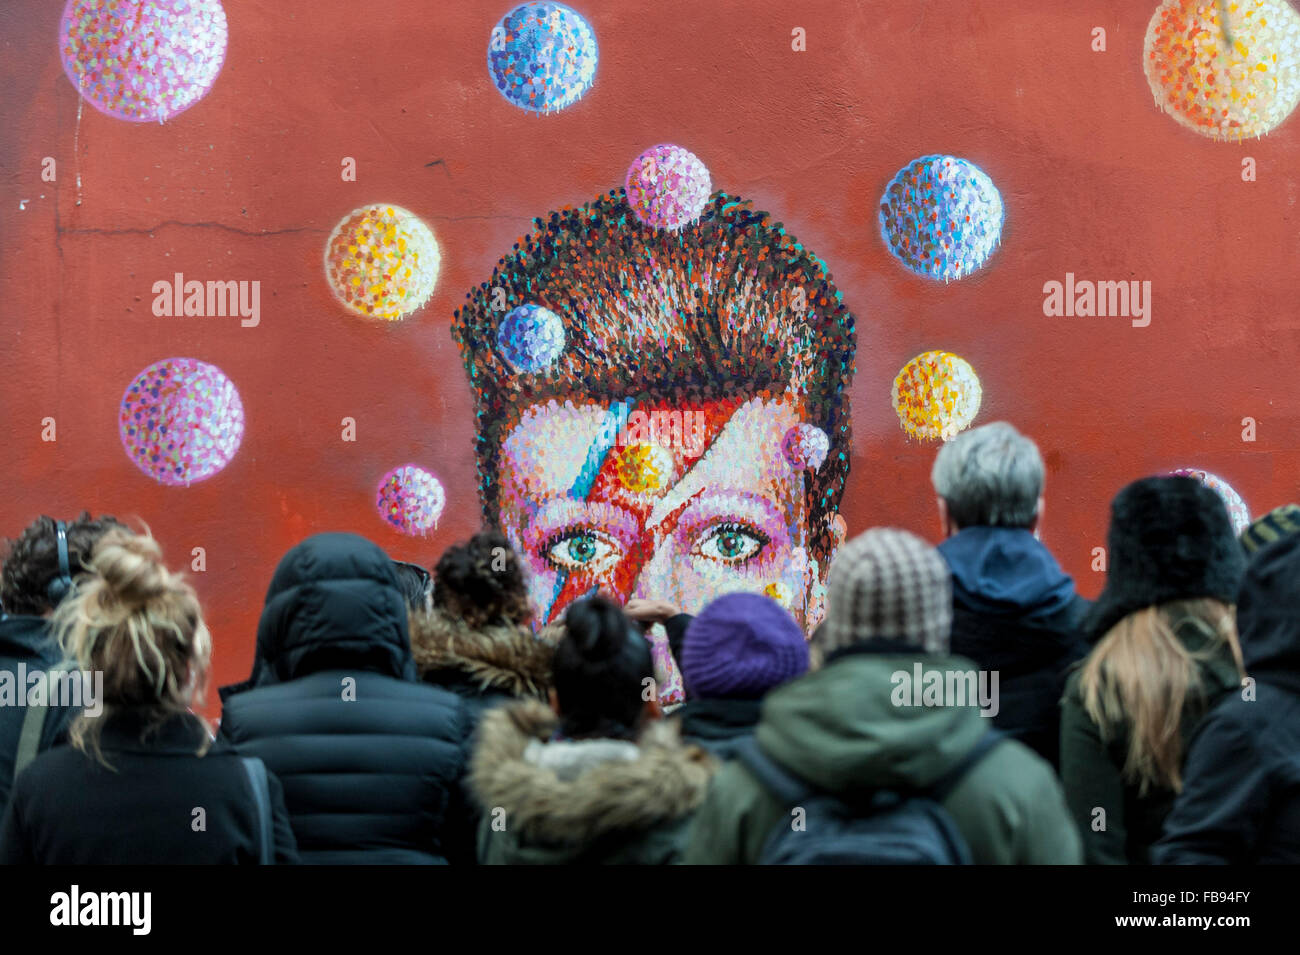 London, UK.  12 January 2016.  Fans continue to visit the mural of David Bowie in Brixton to pay their respects - Stock Image